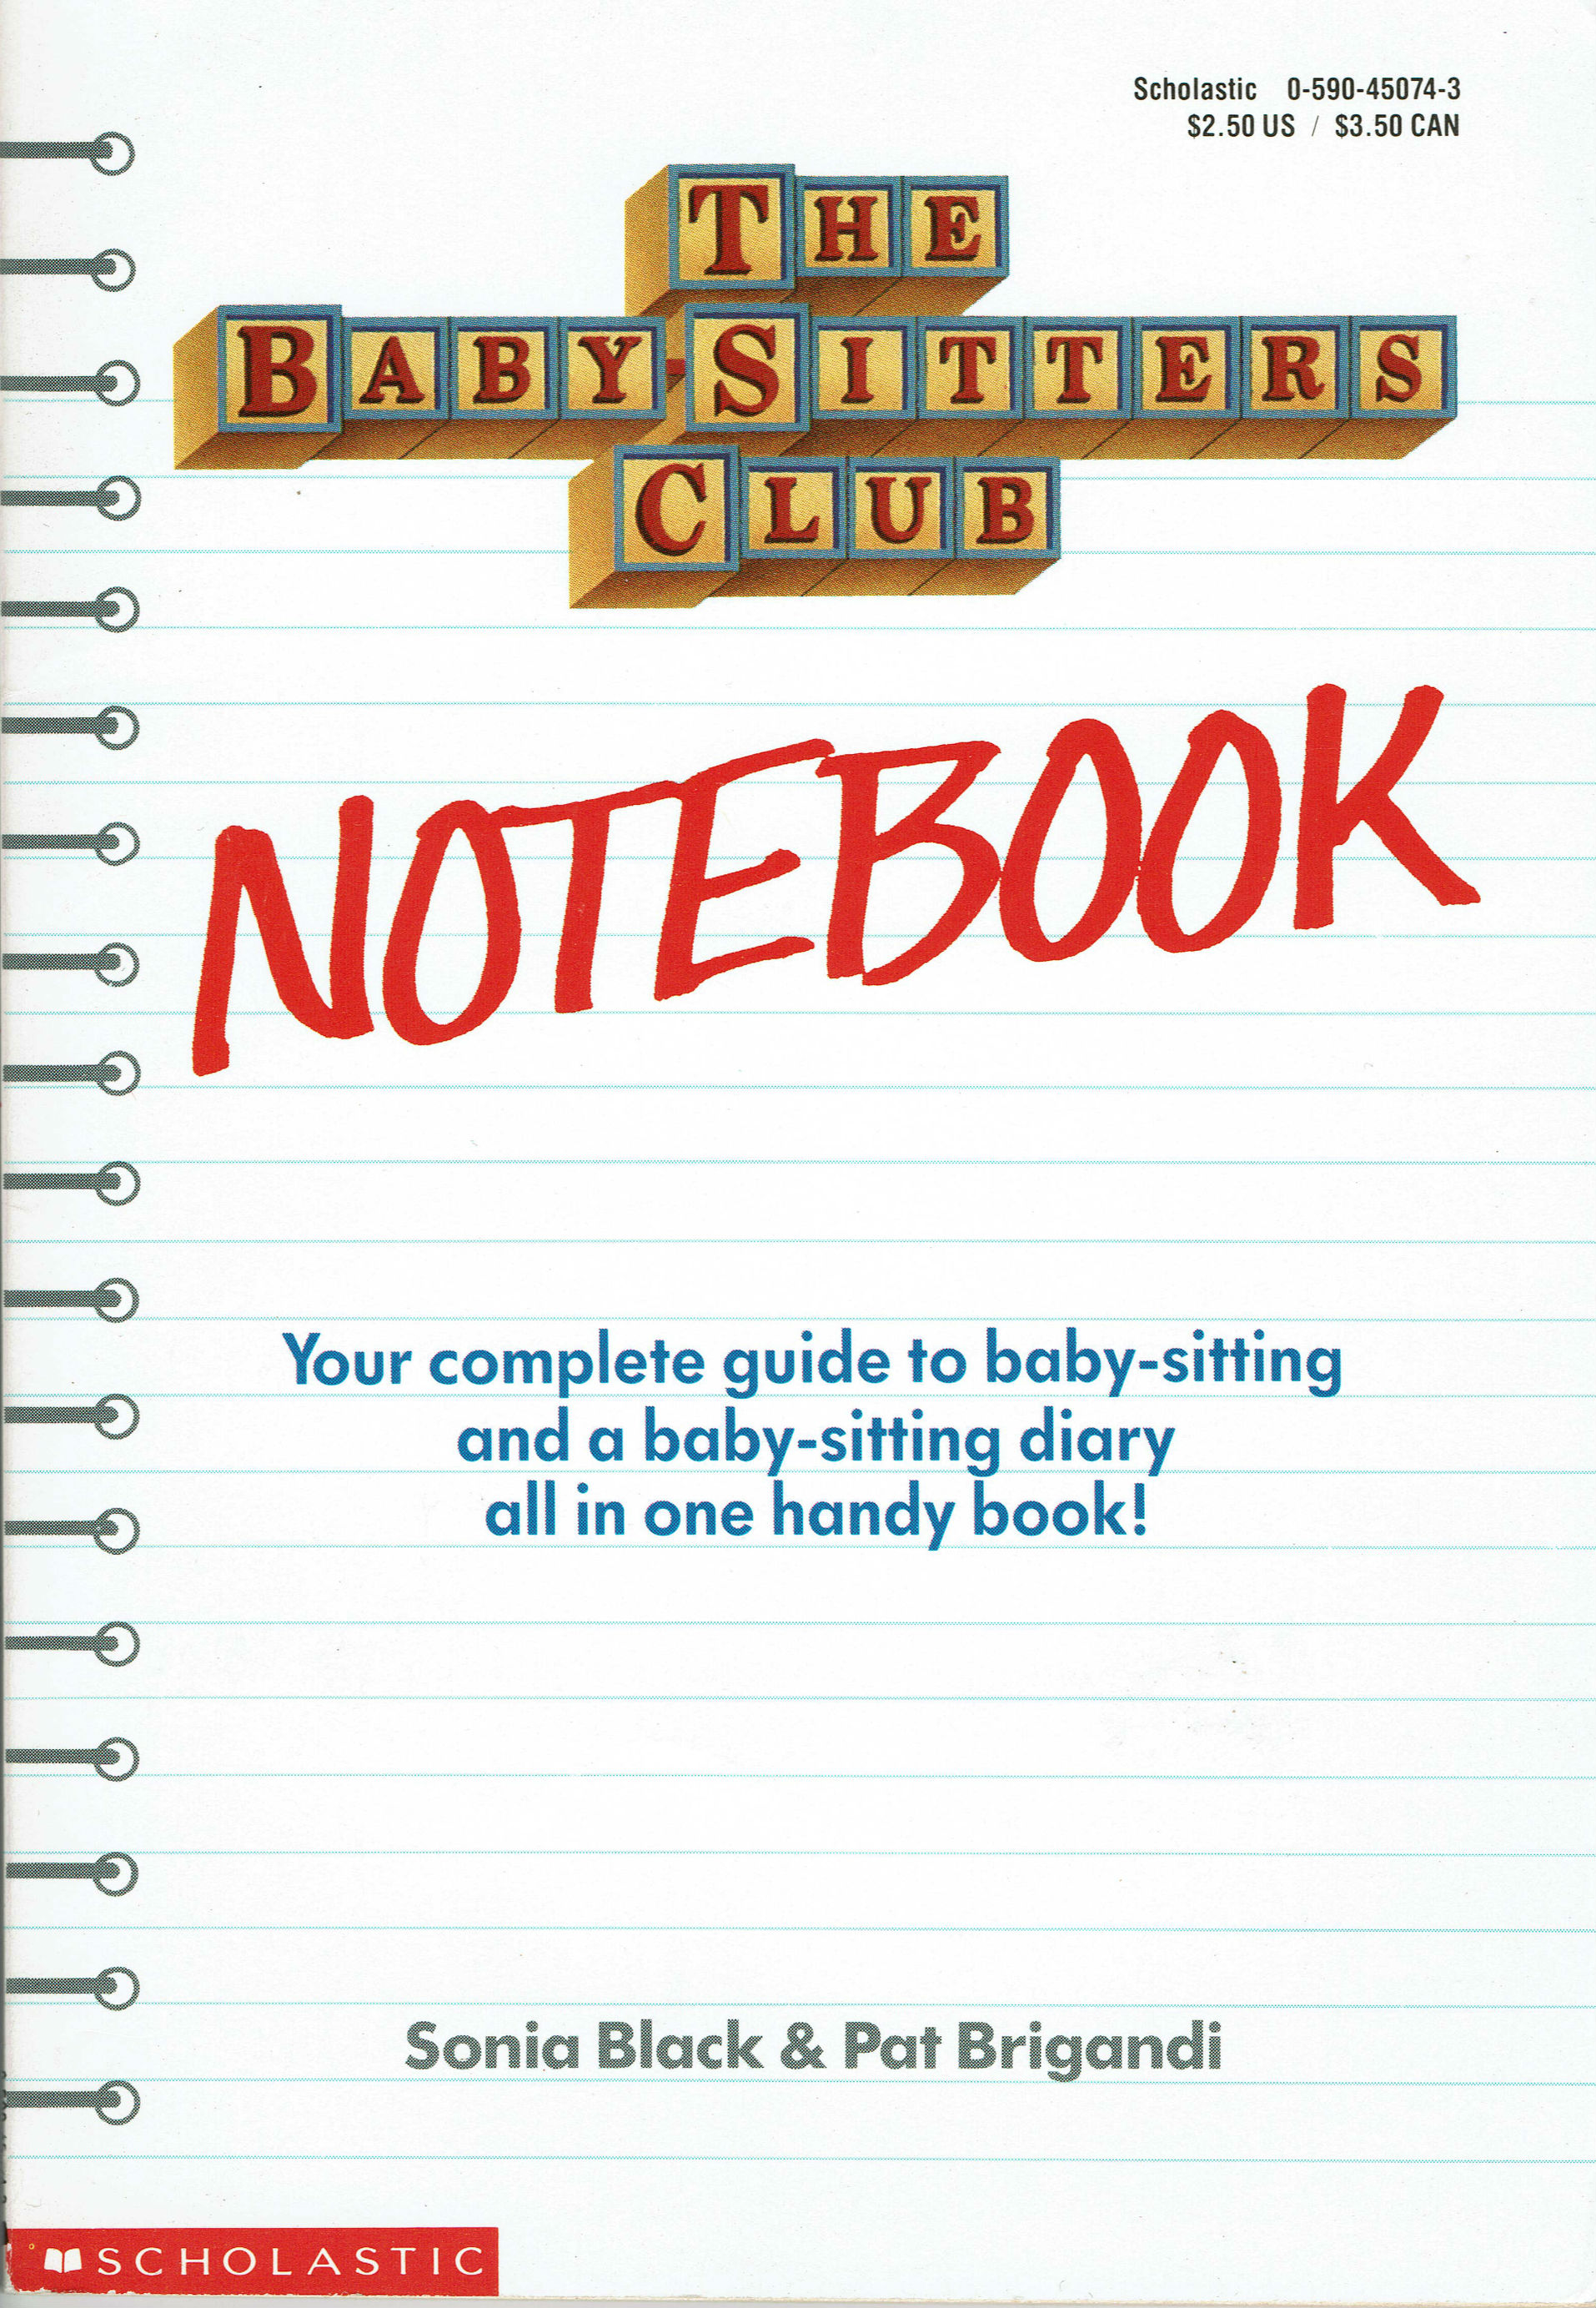 BSCNotebook